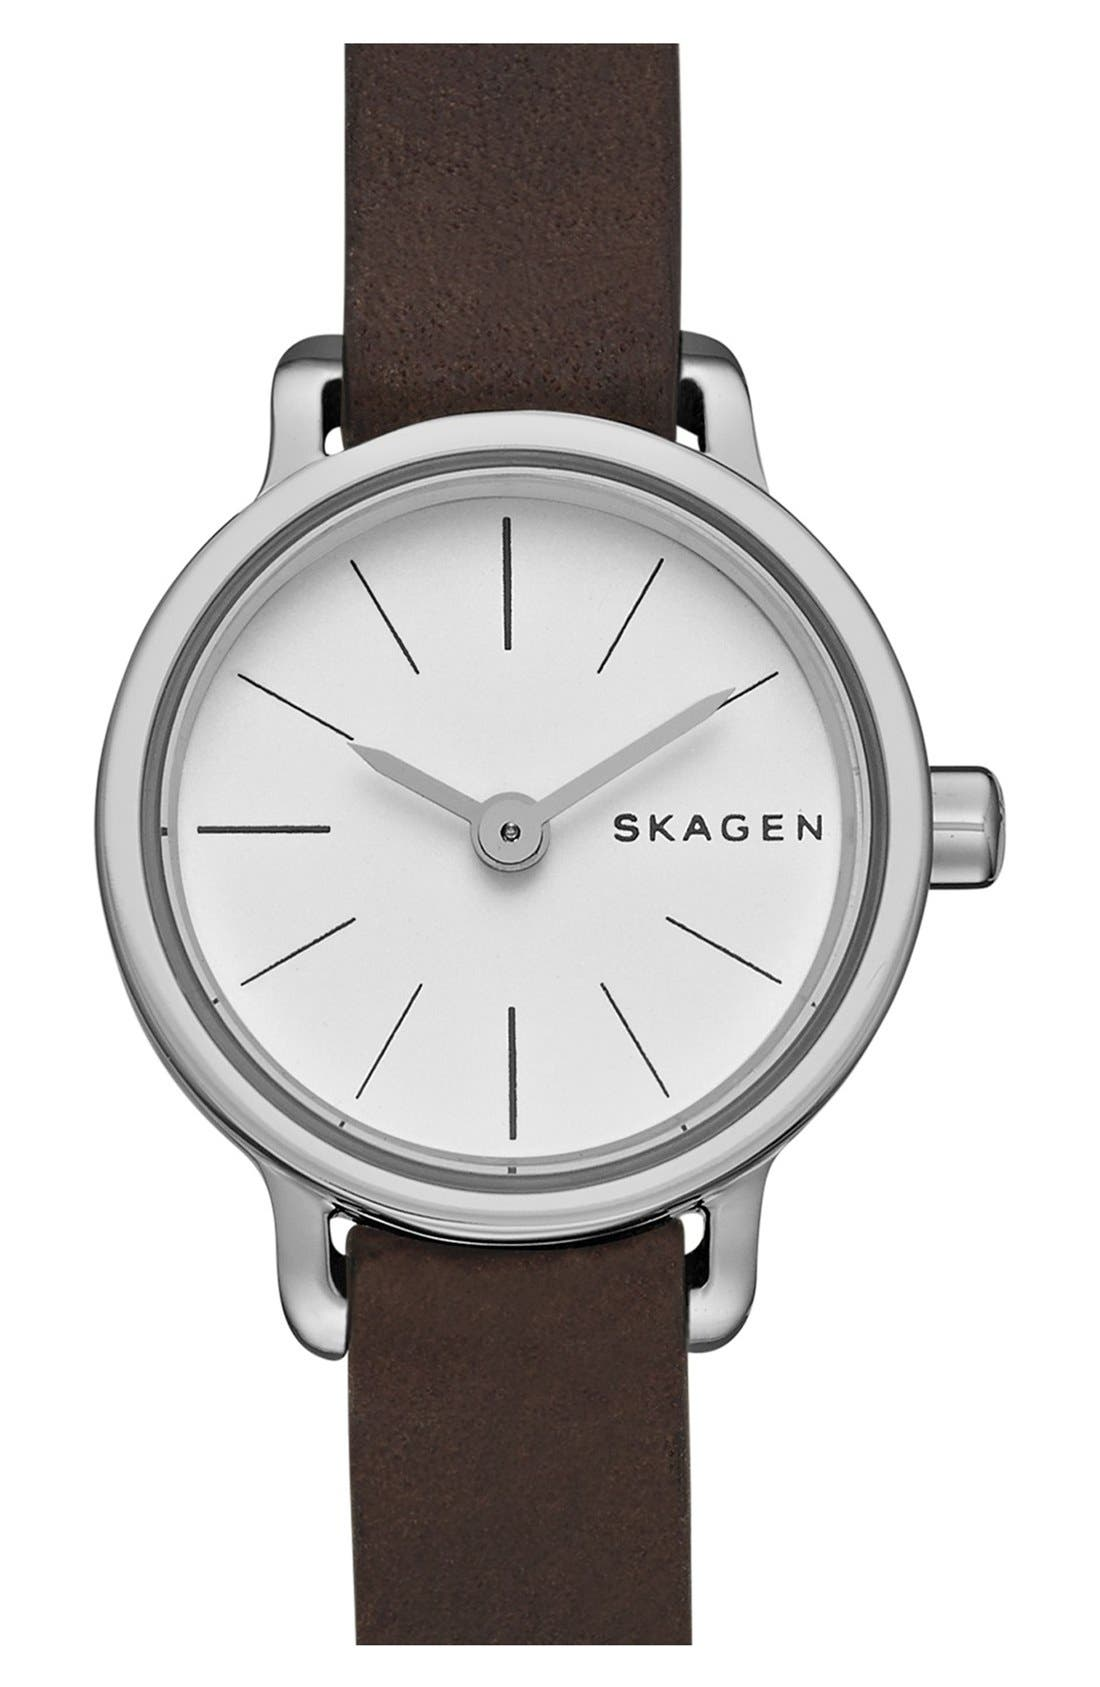 Main Image - Skagen 'Hagen' Leather Strap Watch, 20mm